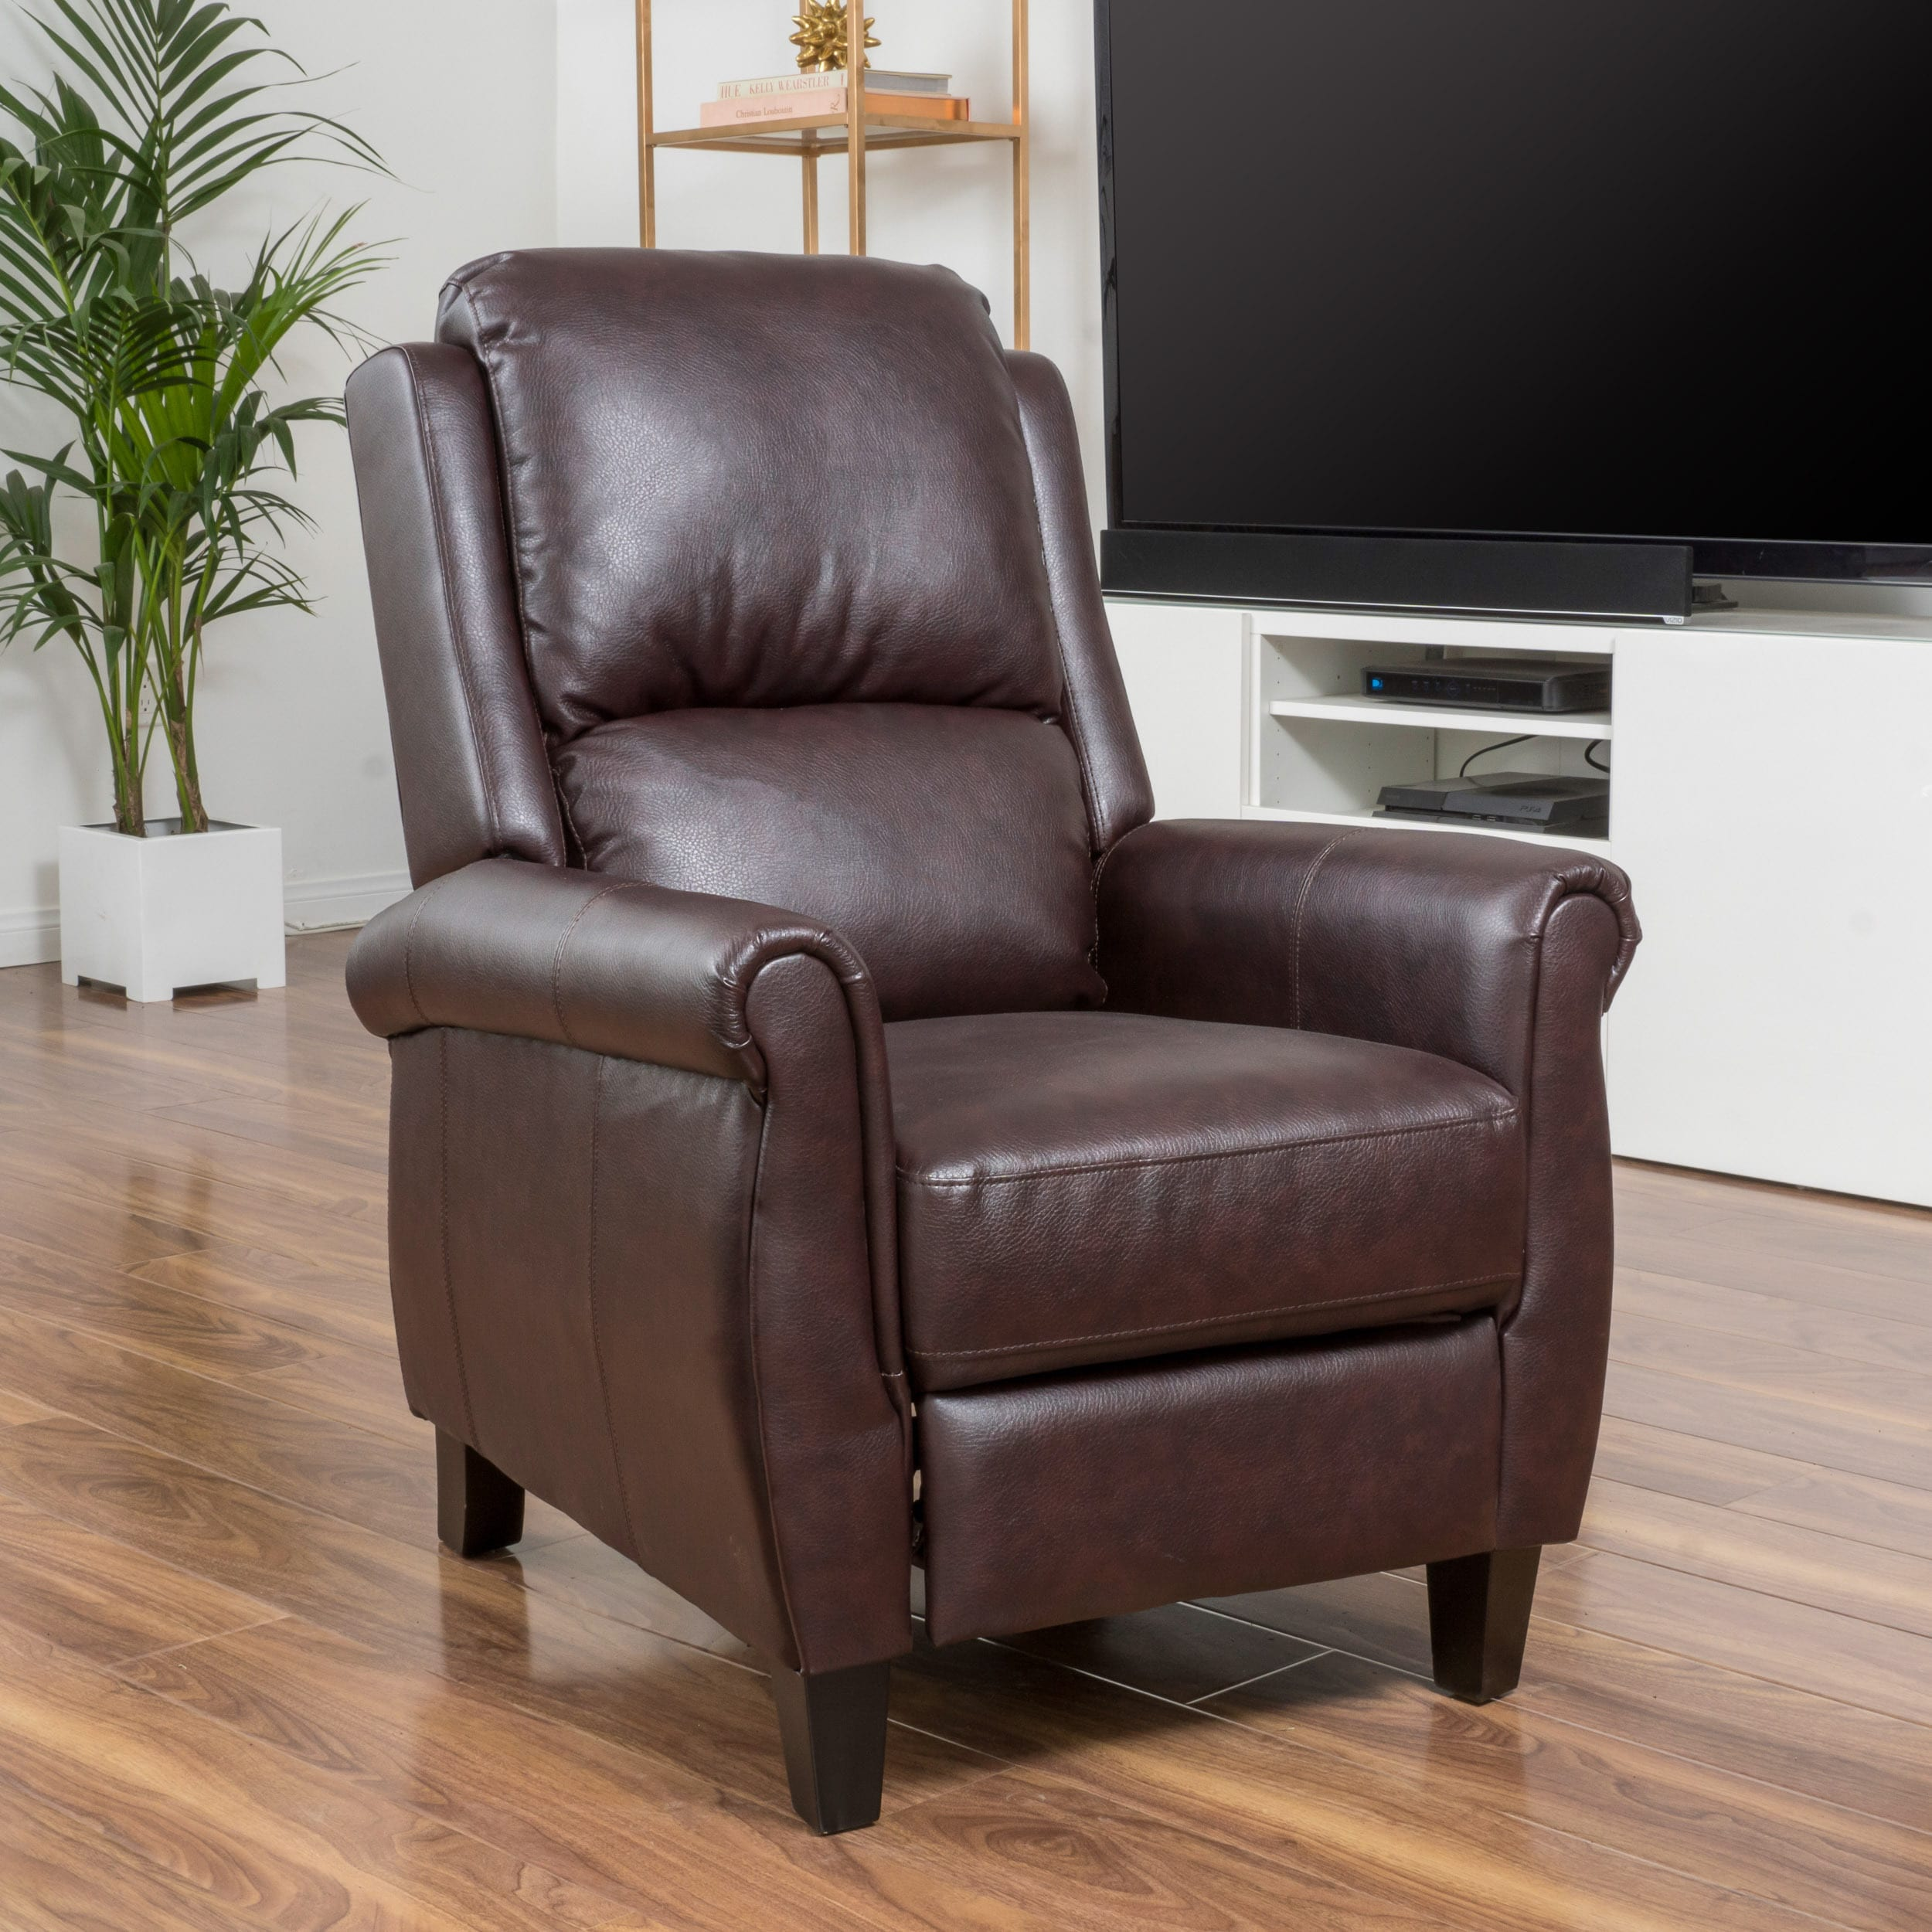 vibrating mcombo recliner pu product massage shop lounge heated sofa swivel rakuten w leather chair